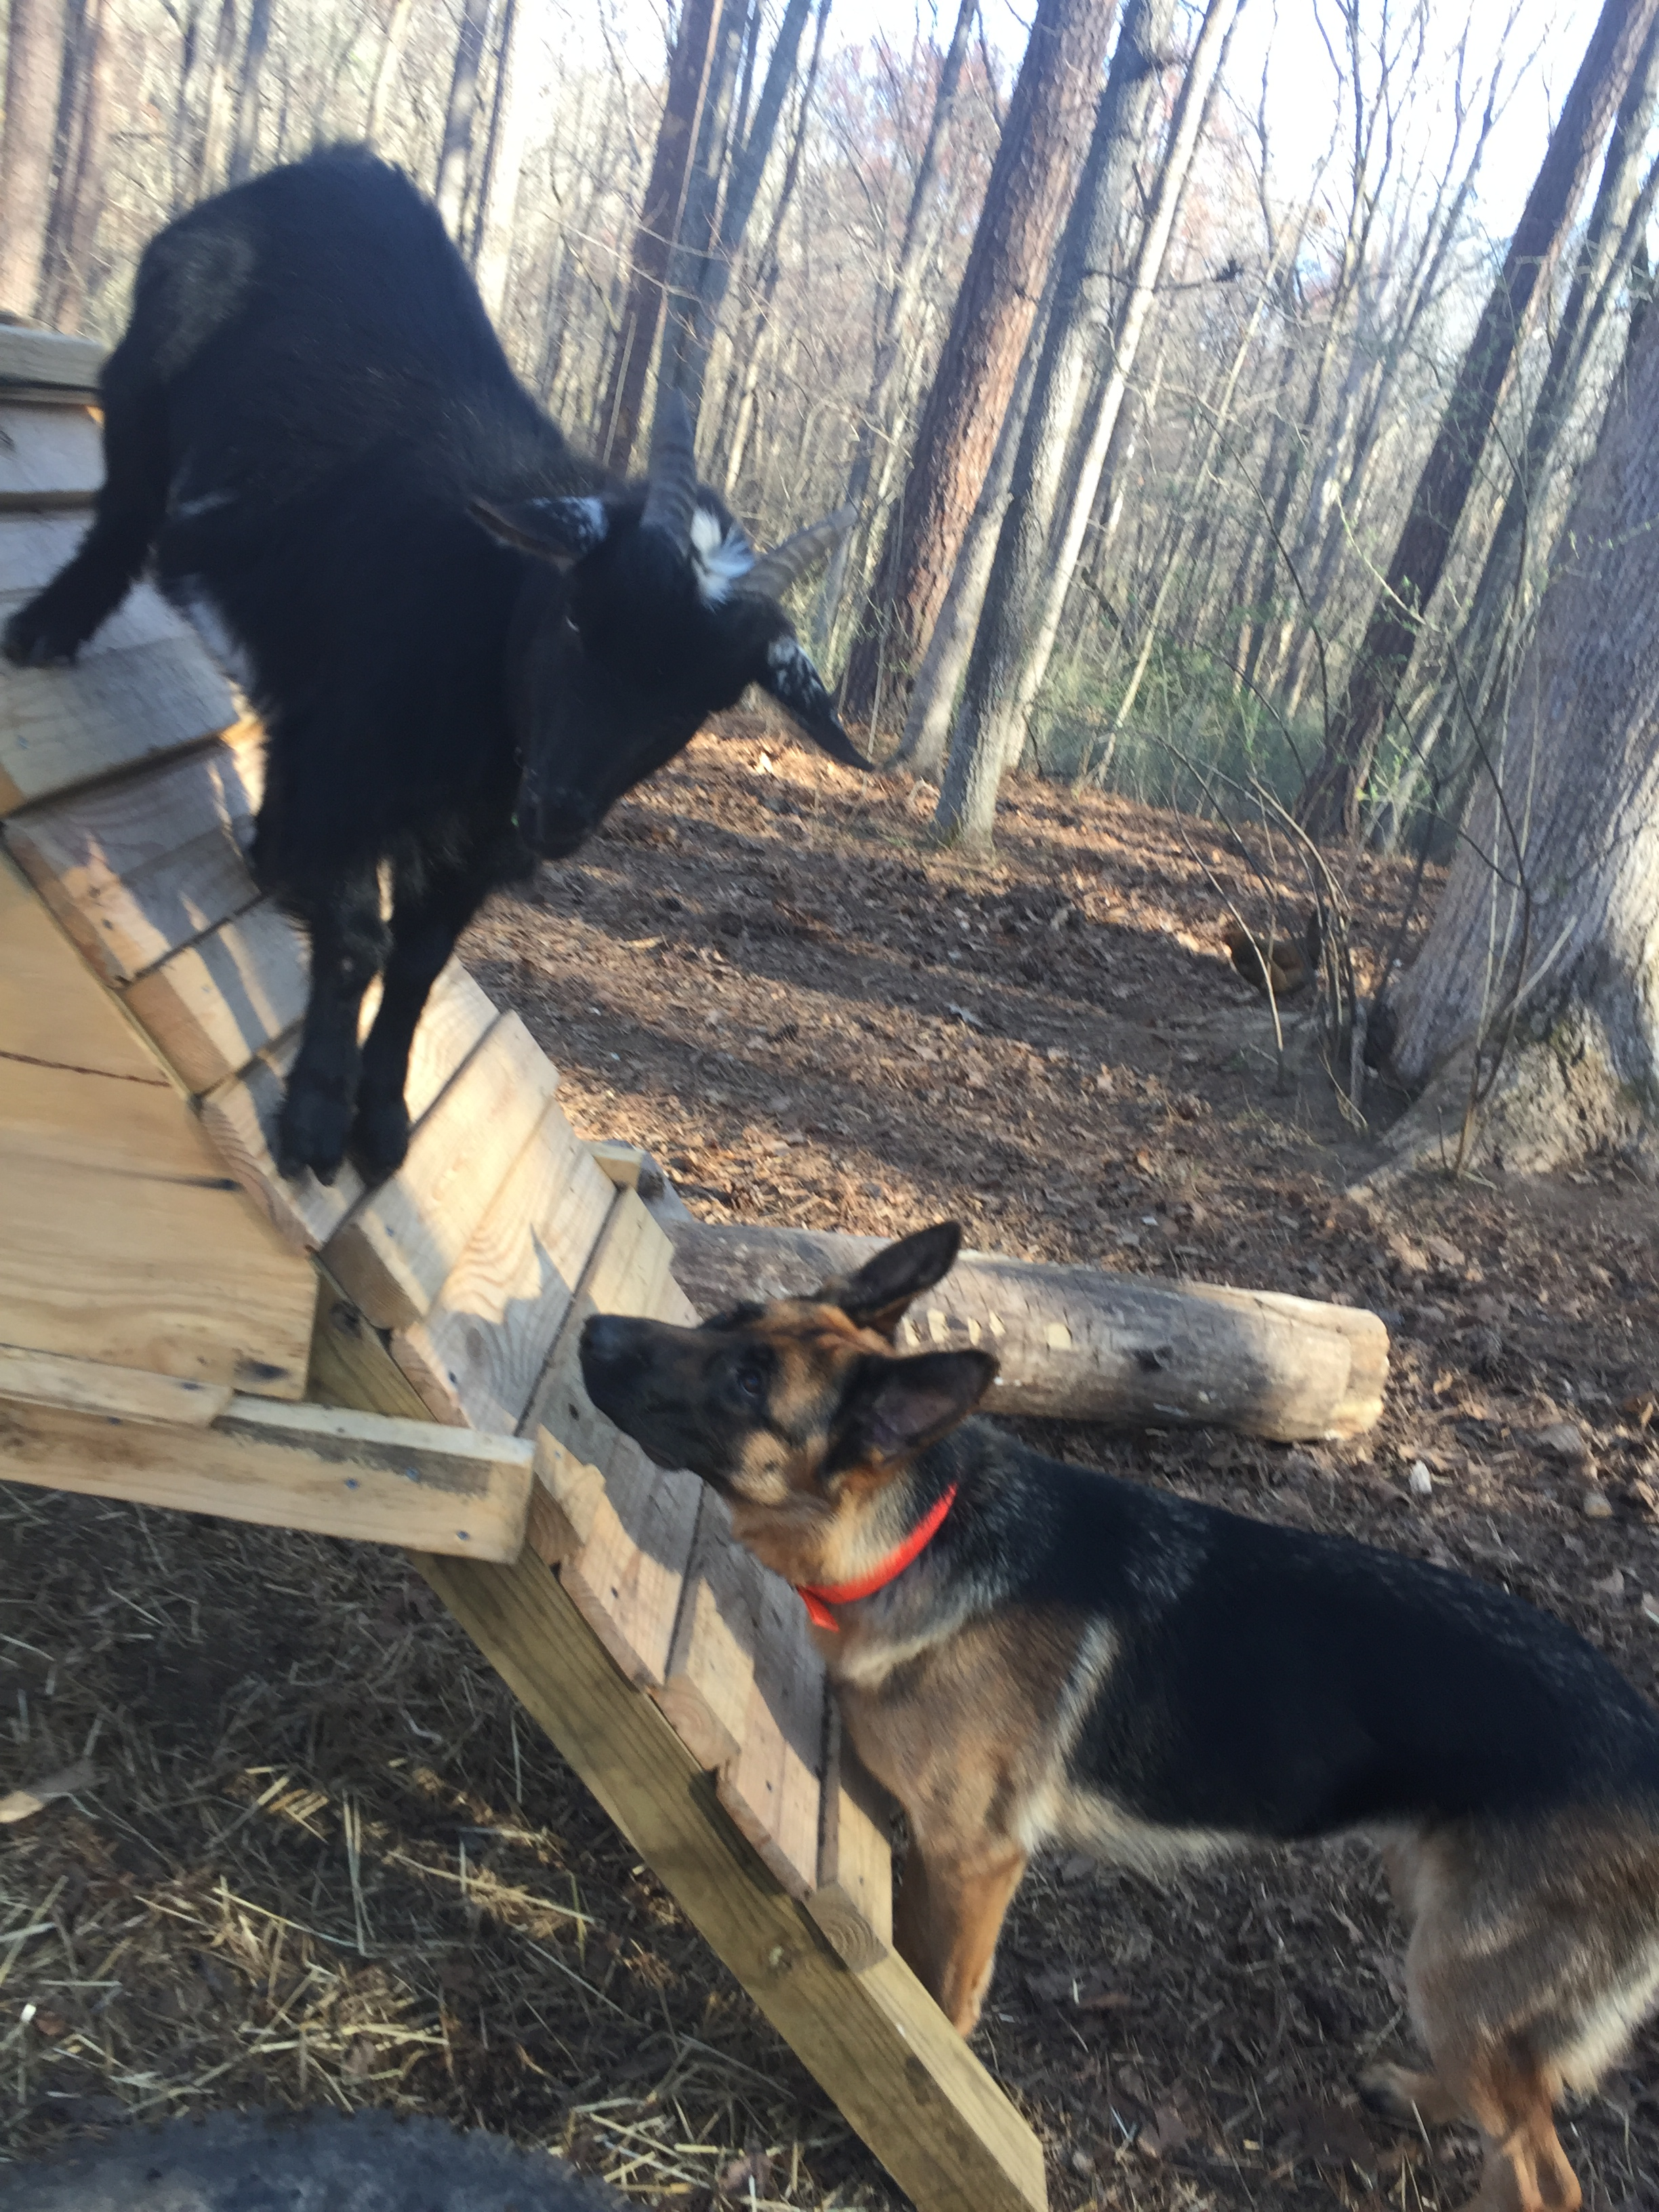 peppin earns her keep by working on a farm, her rounds include checking on the goats